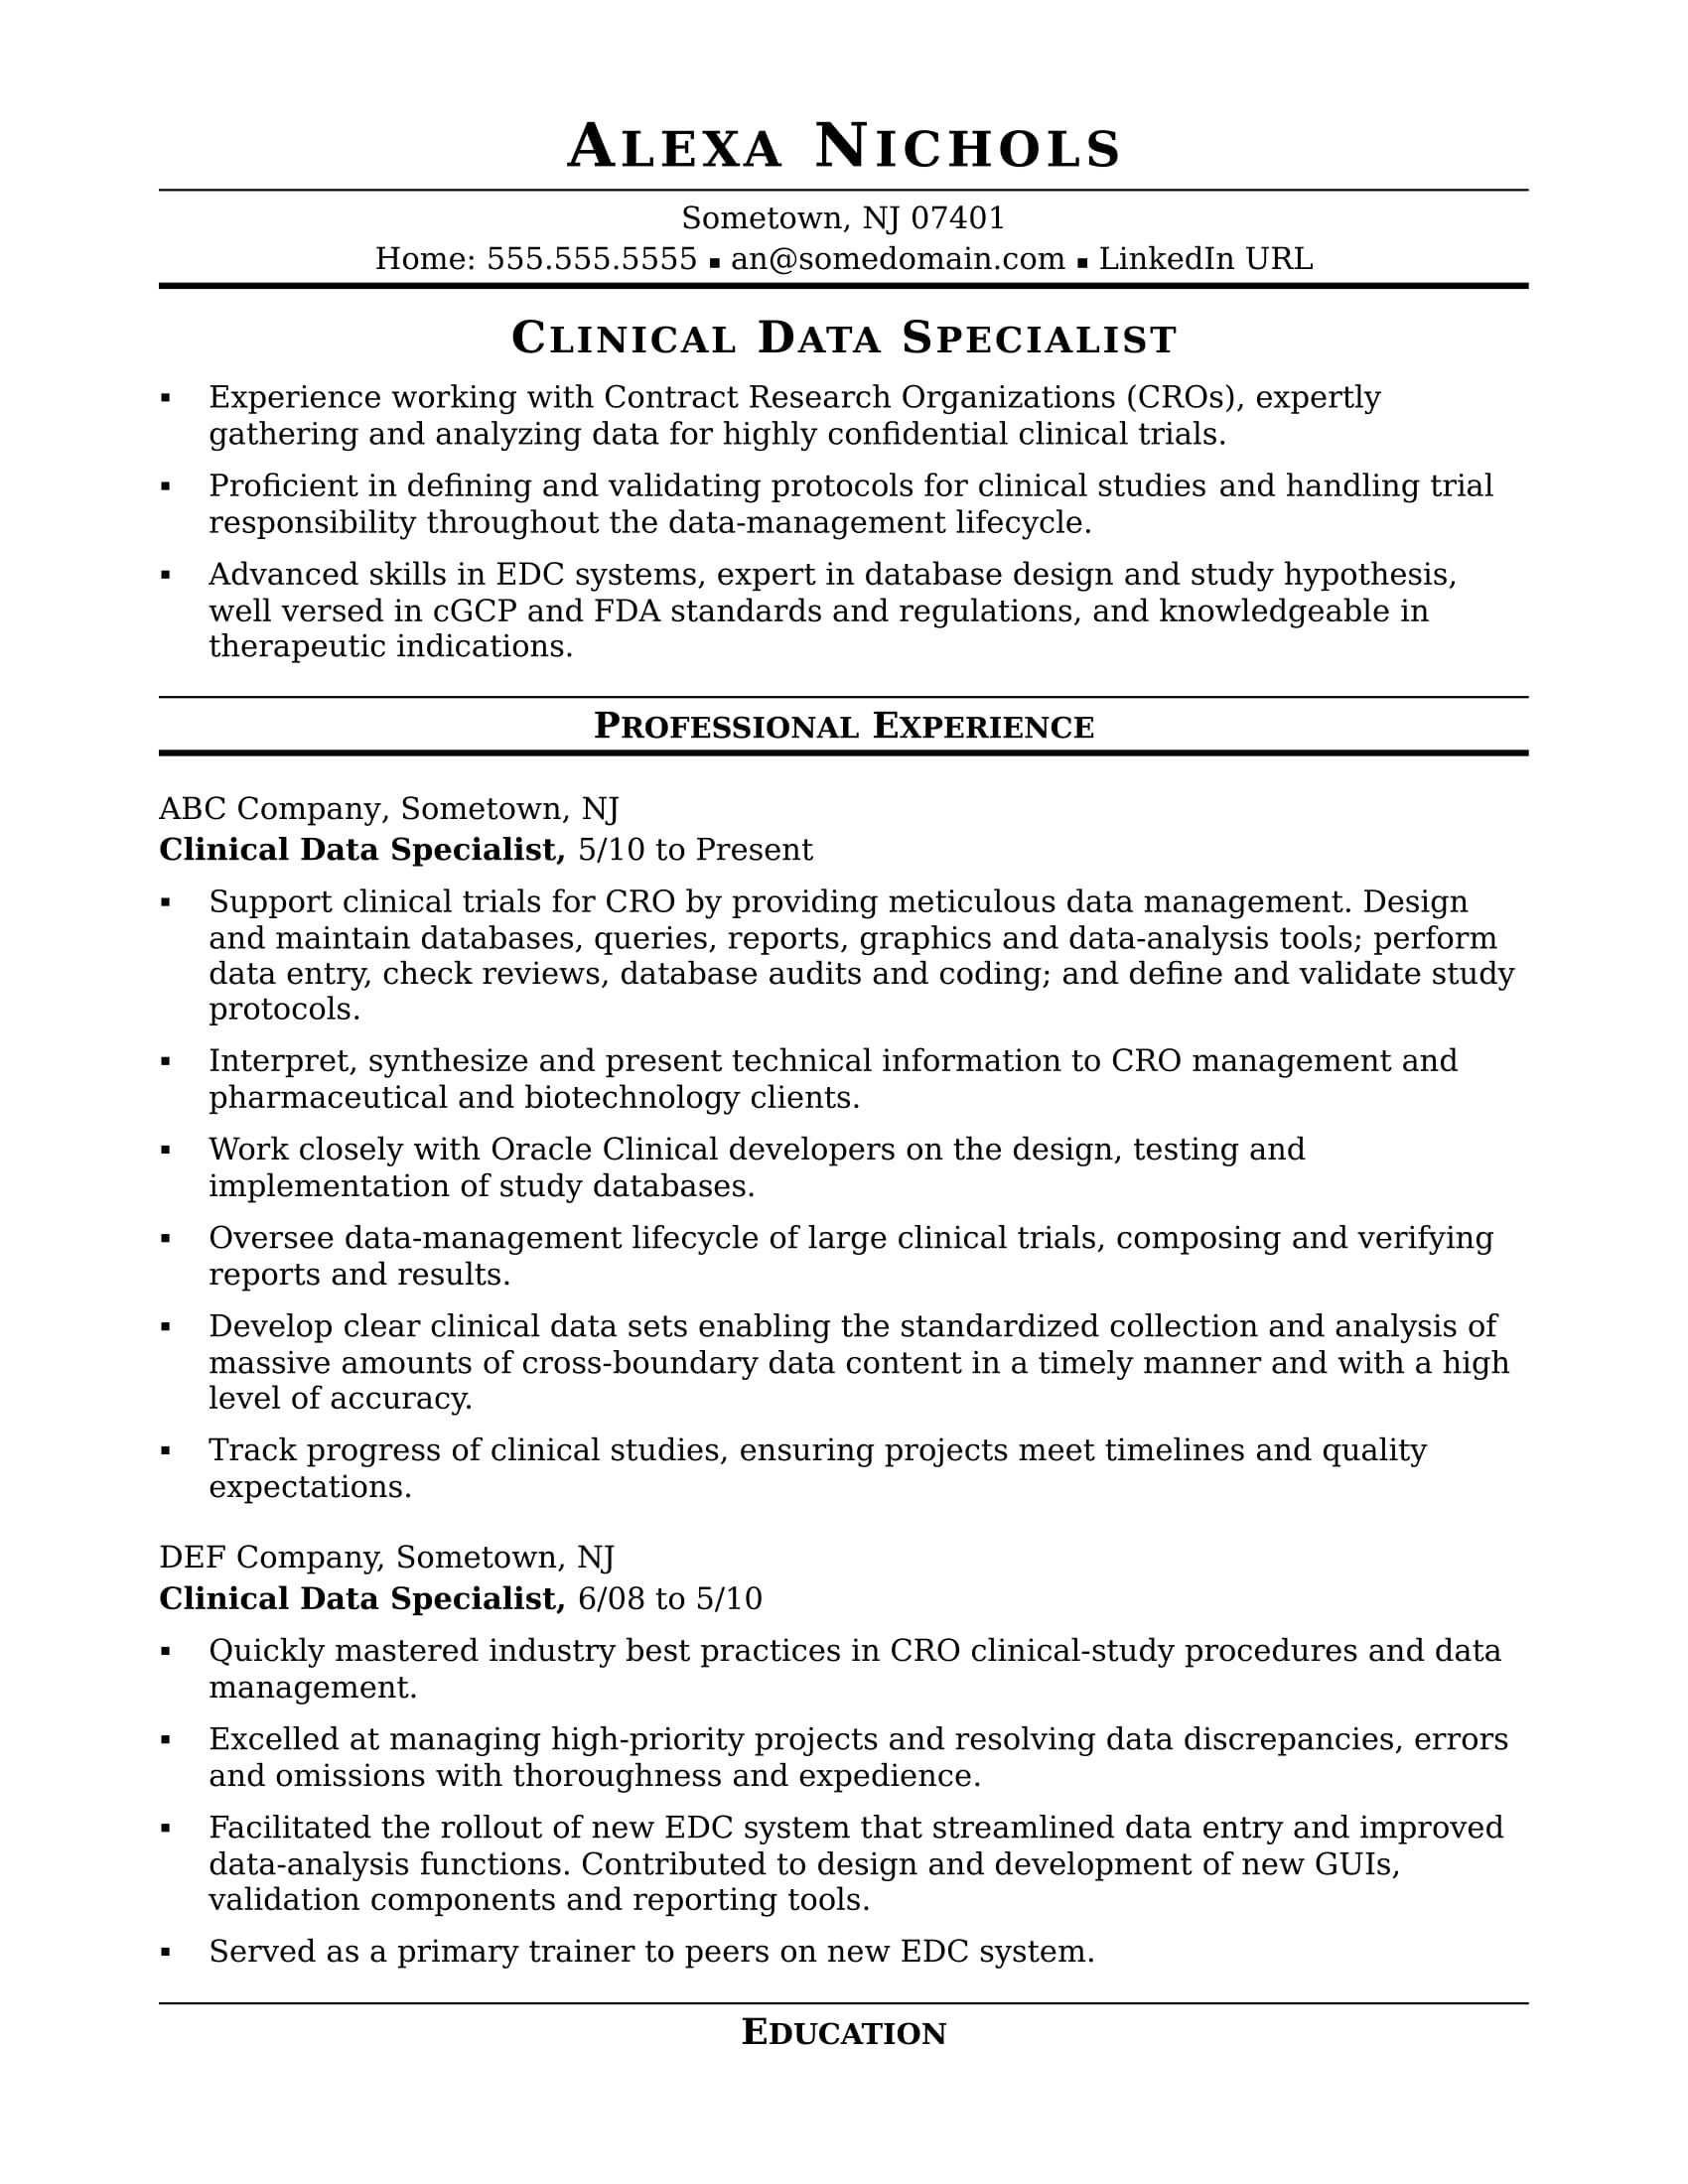 Clinical Data Specialist Resume Sample  MonsterCom